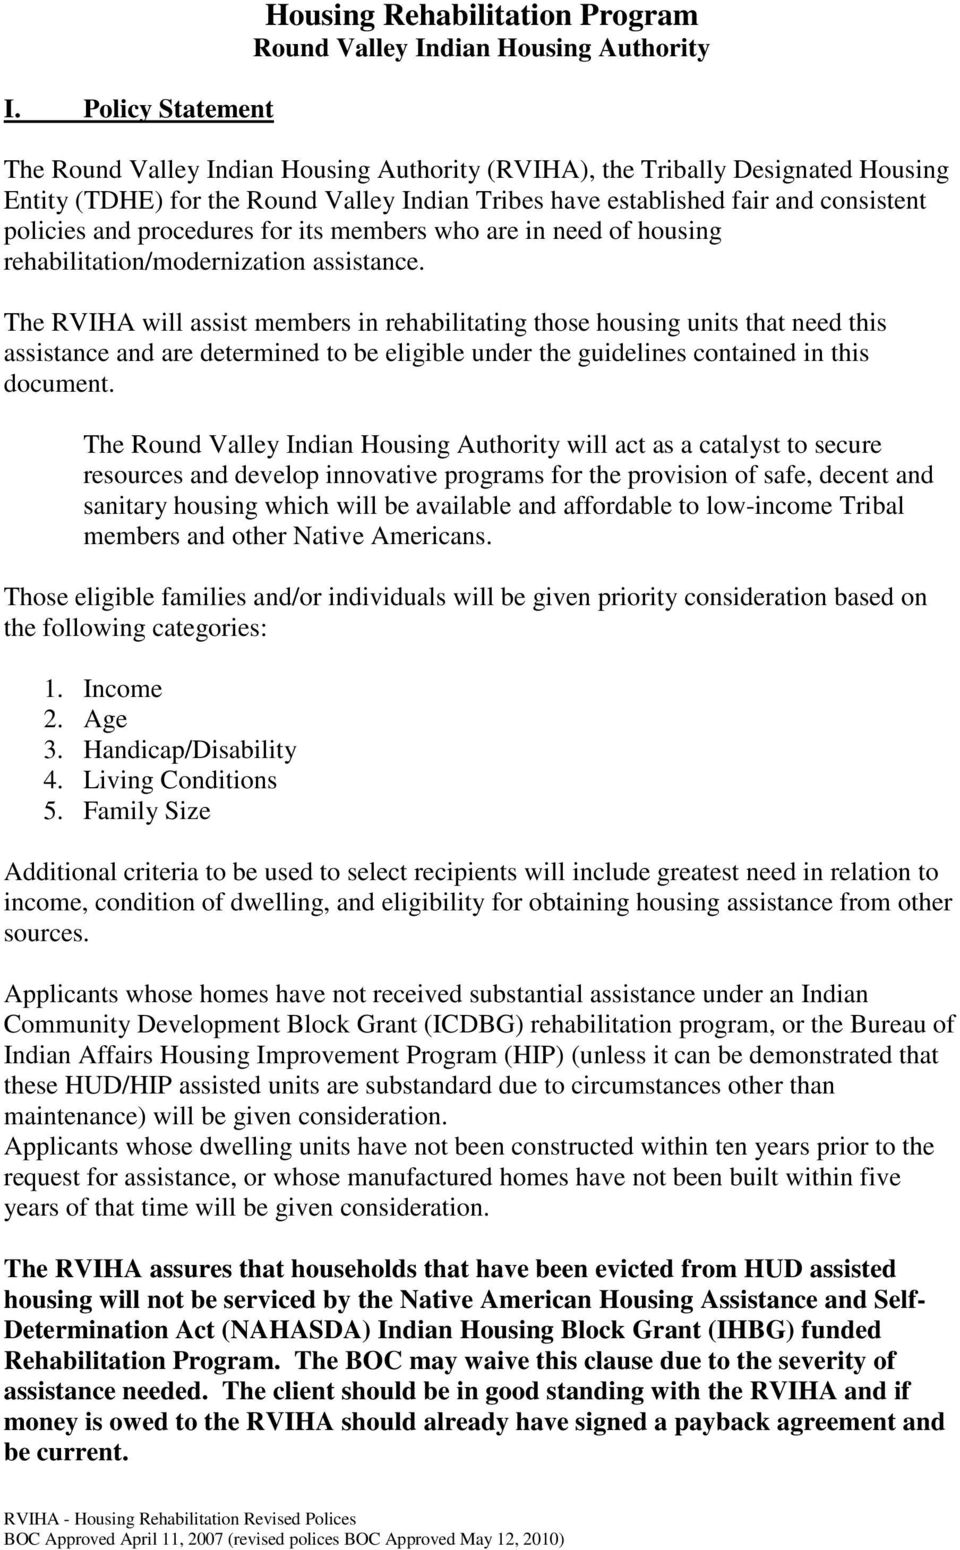 The RVIHA will assist members in rehabilitating those housing units that need this assistance and are determined to be eligible under the guidelines contained in this document.